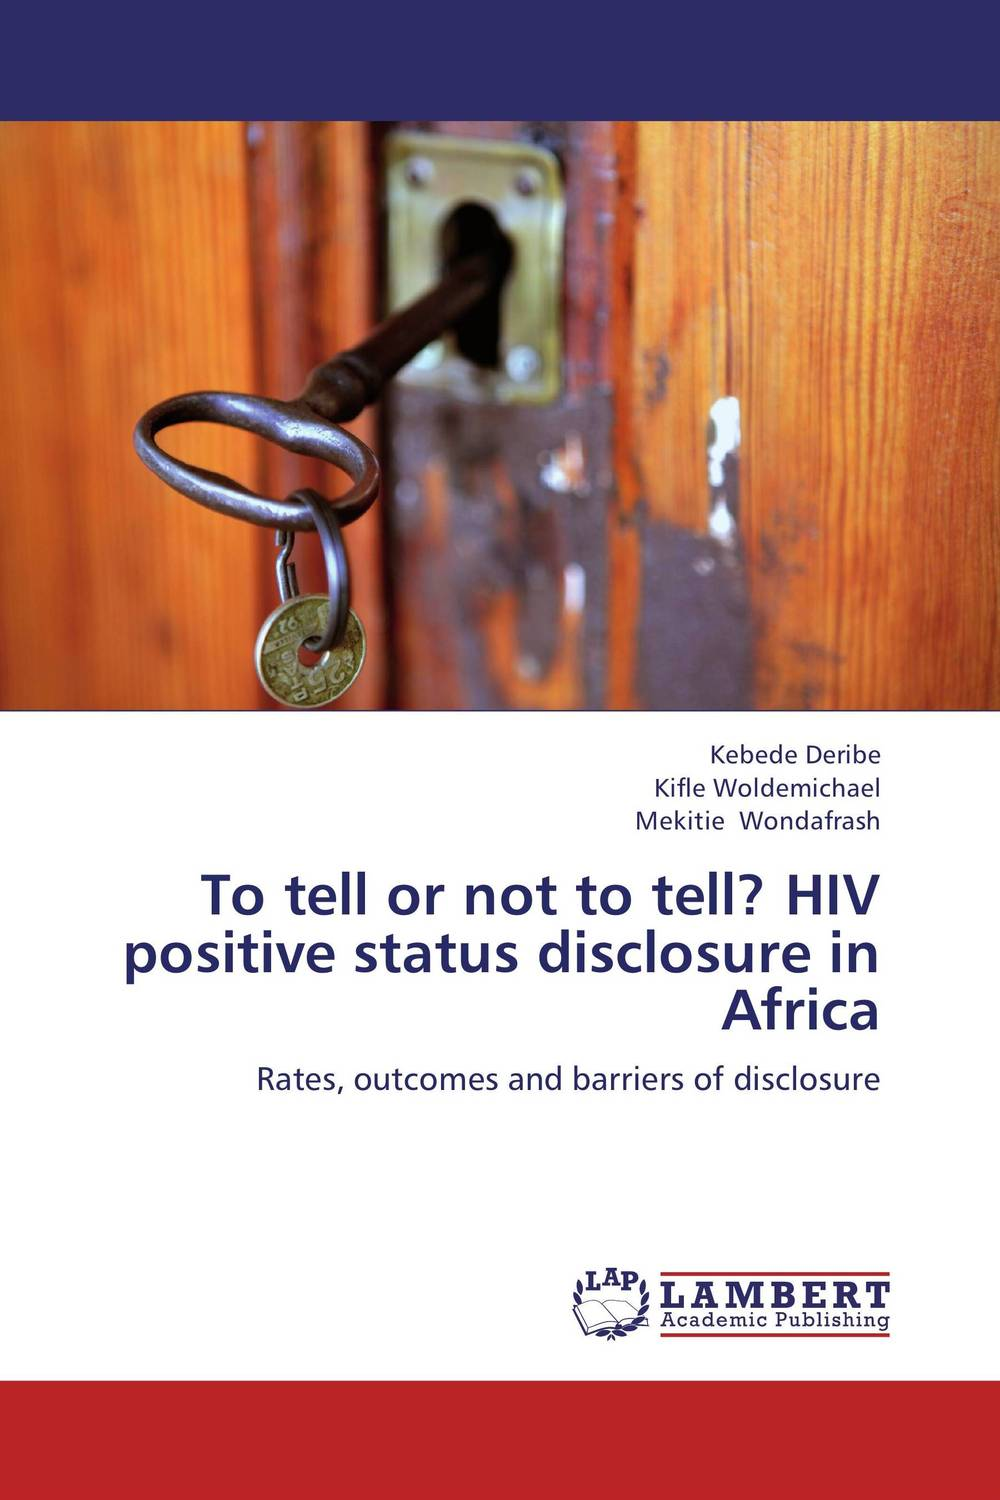 To tell or not to tell? HIV positive status disclosure in Africa nutritional status of hiv positive patients